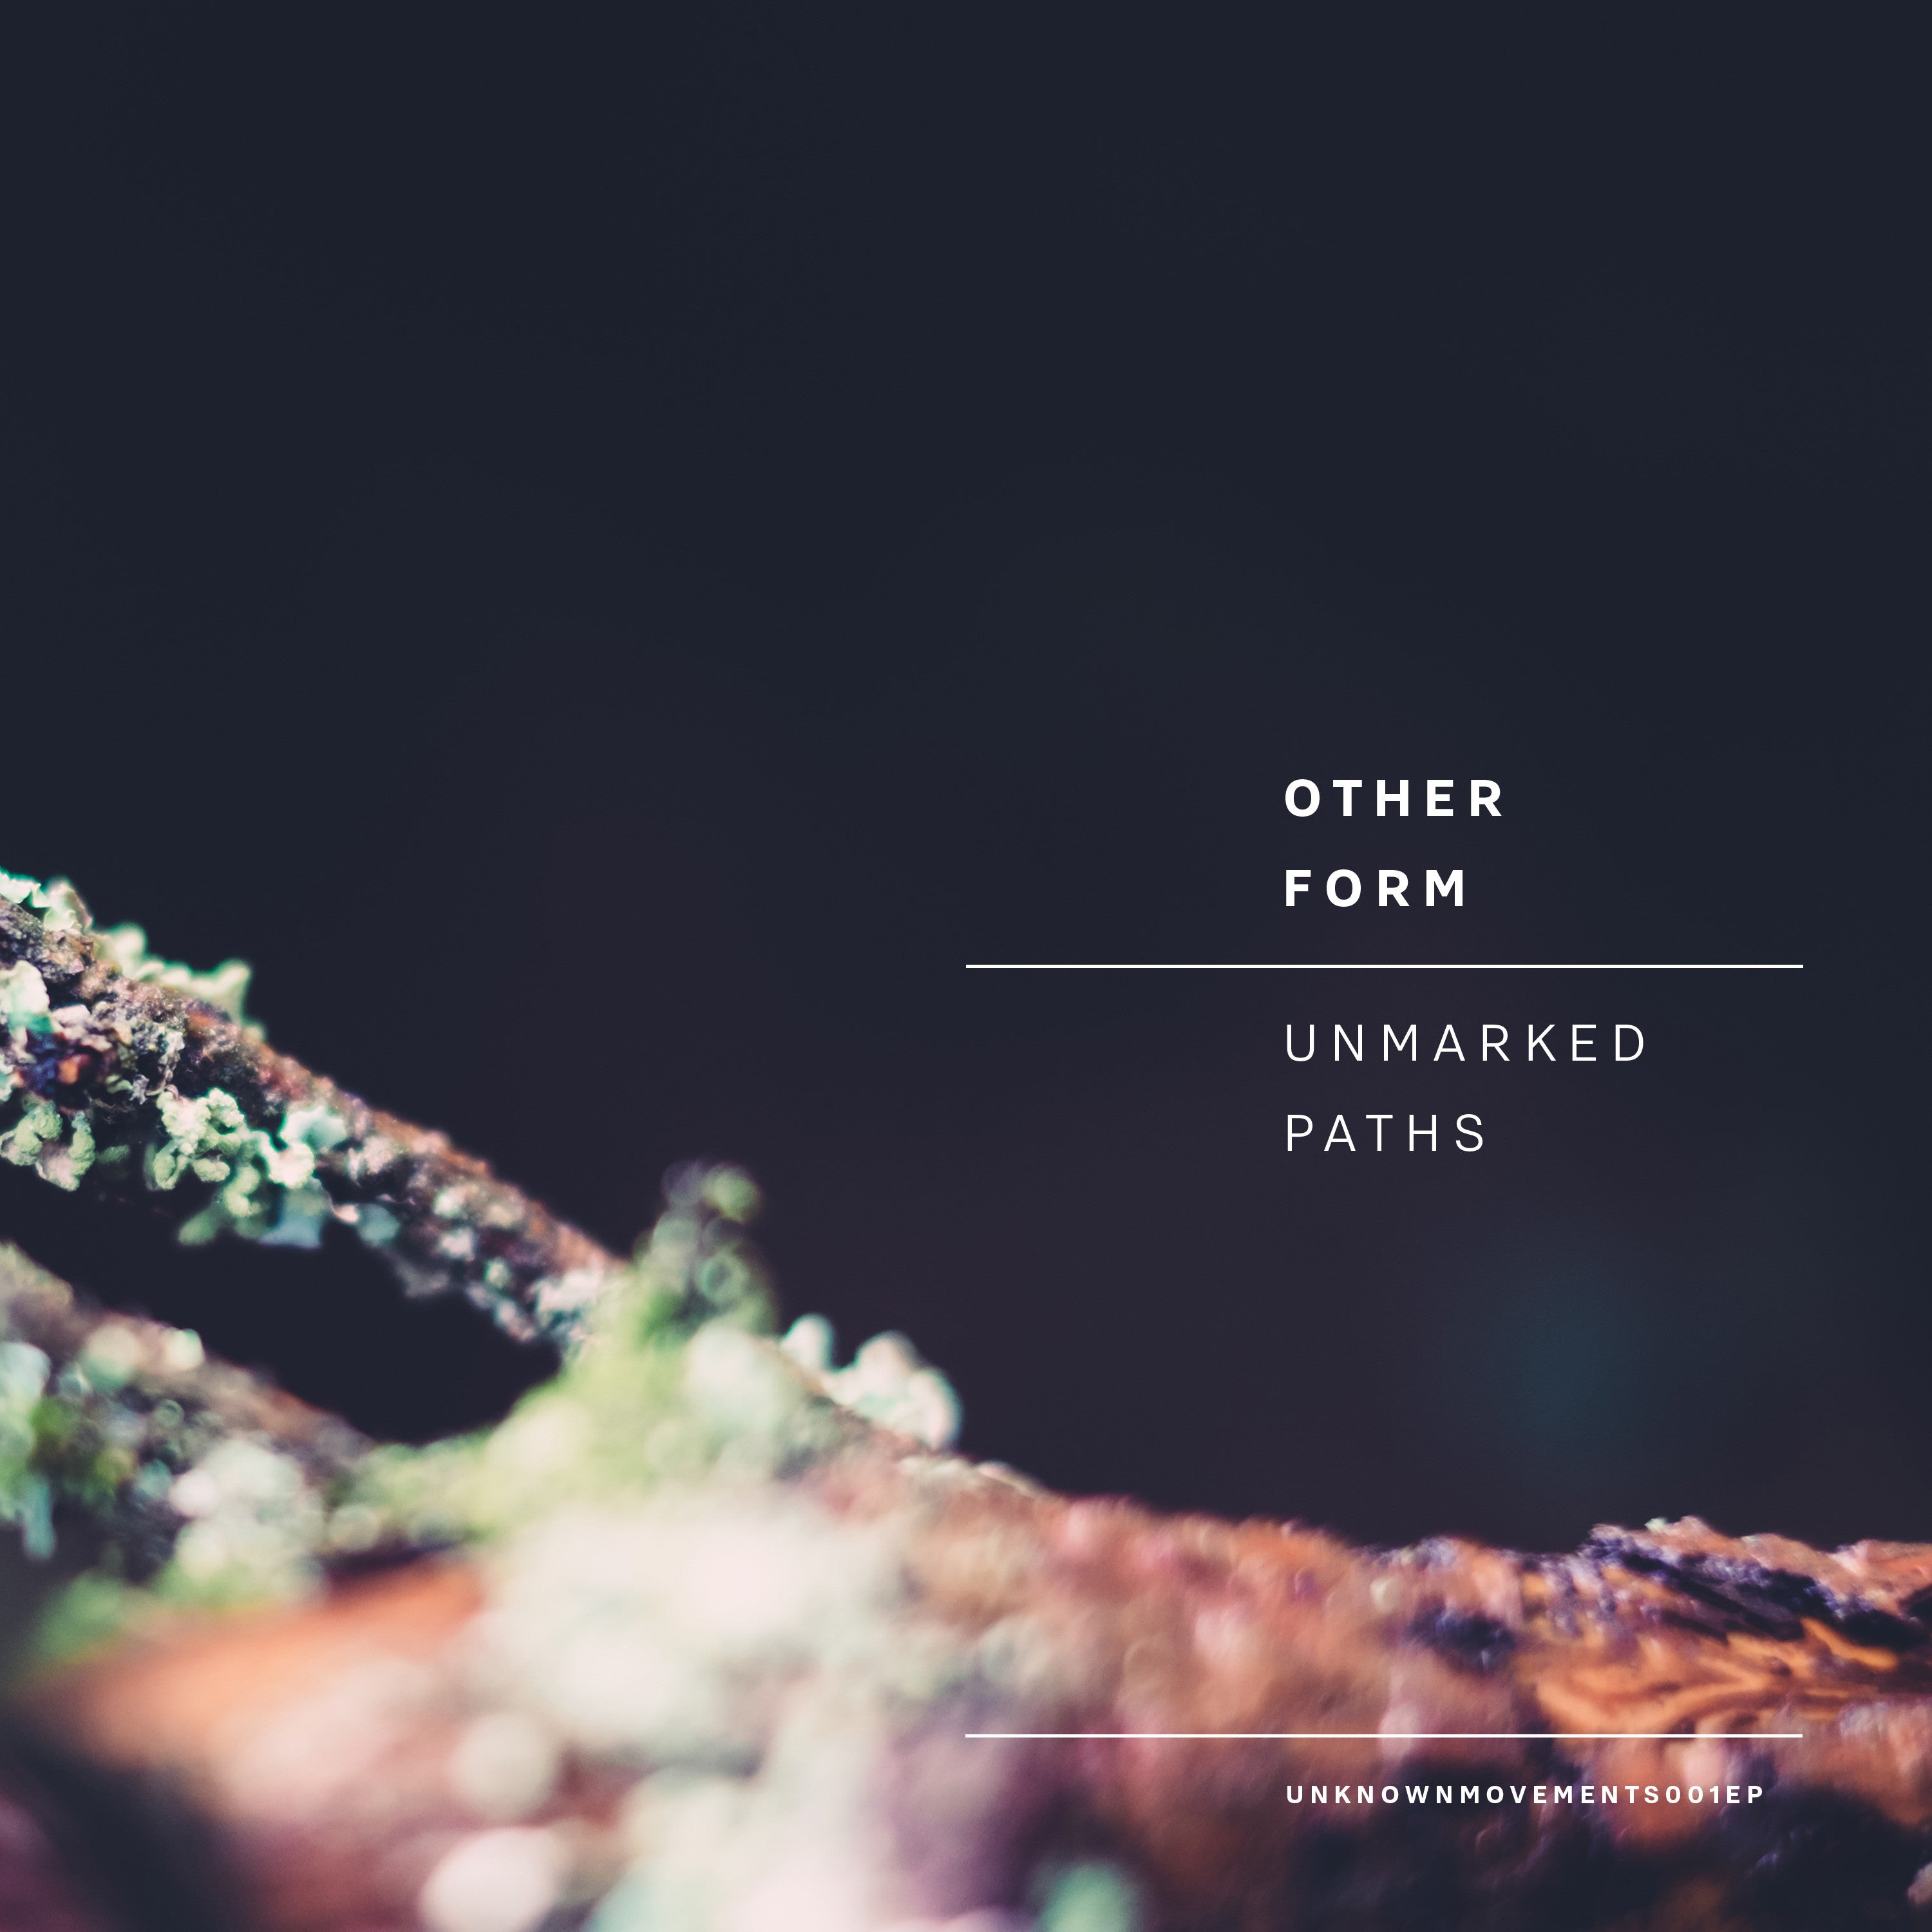 Other Form - Unmarked Paths